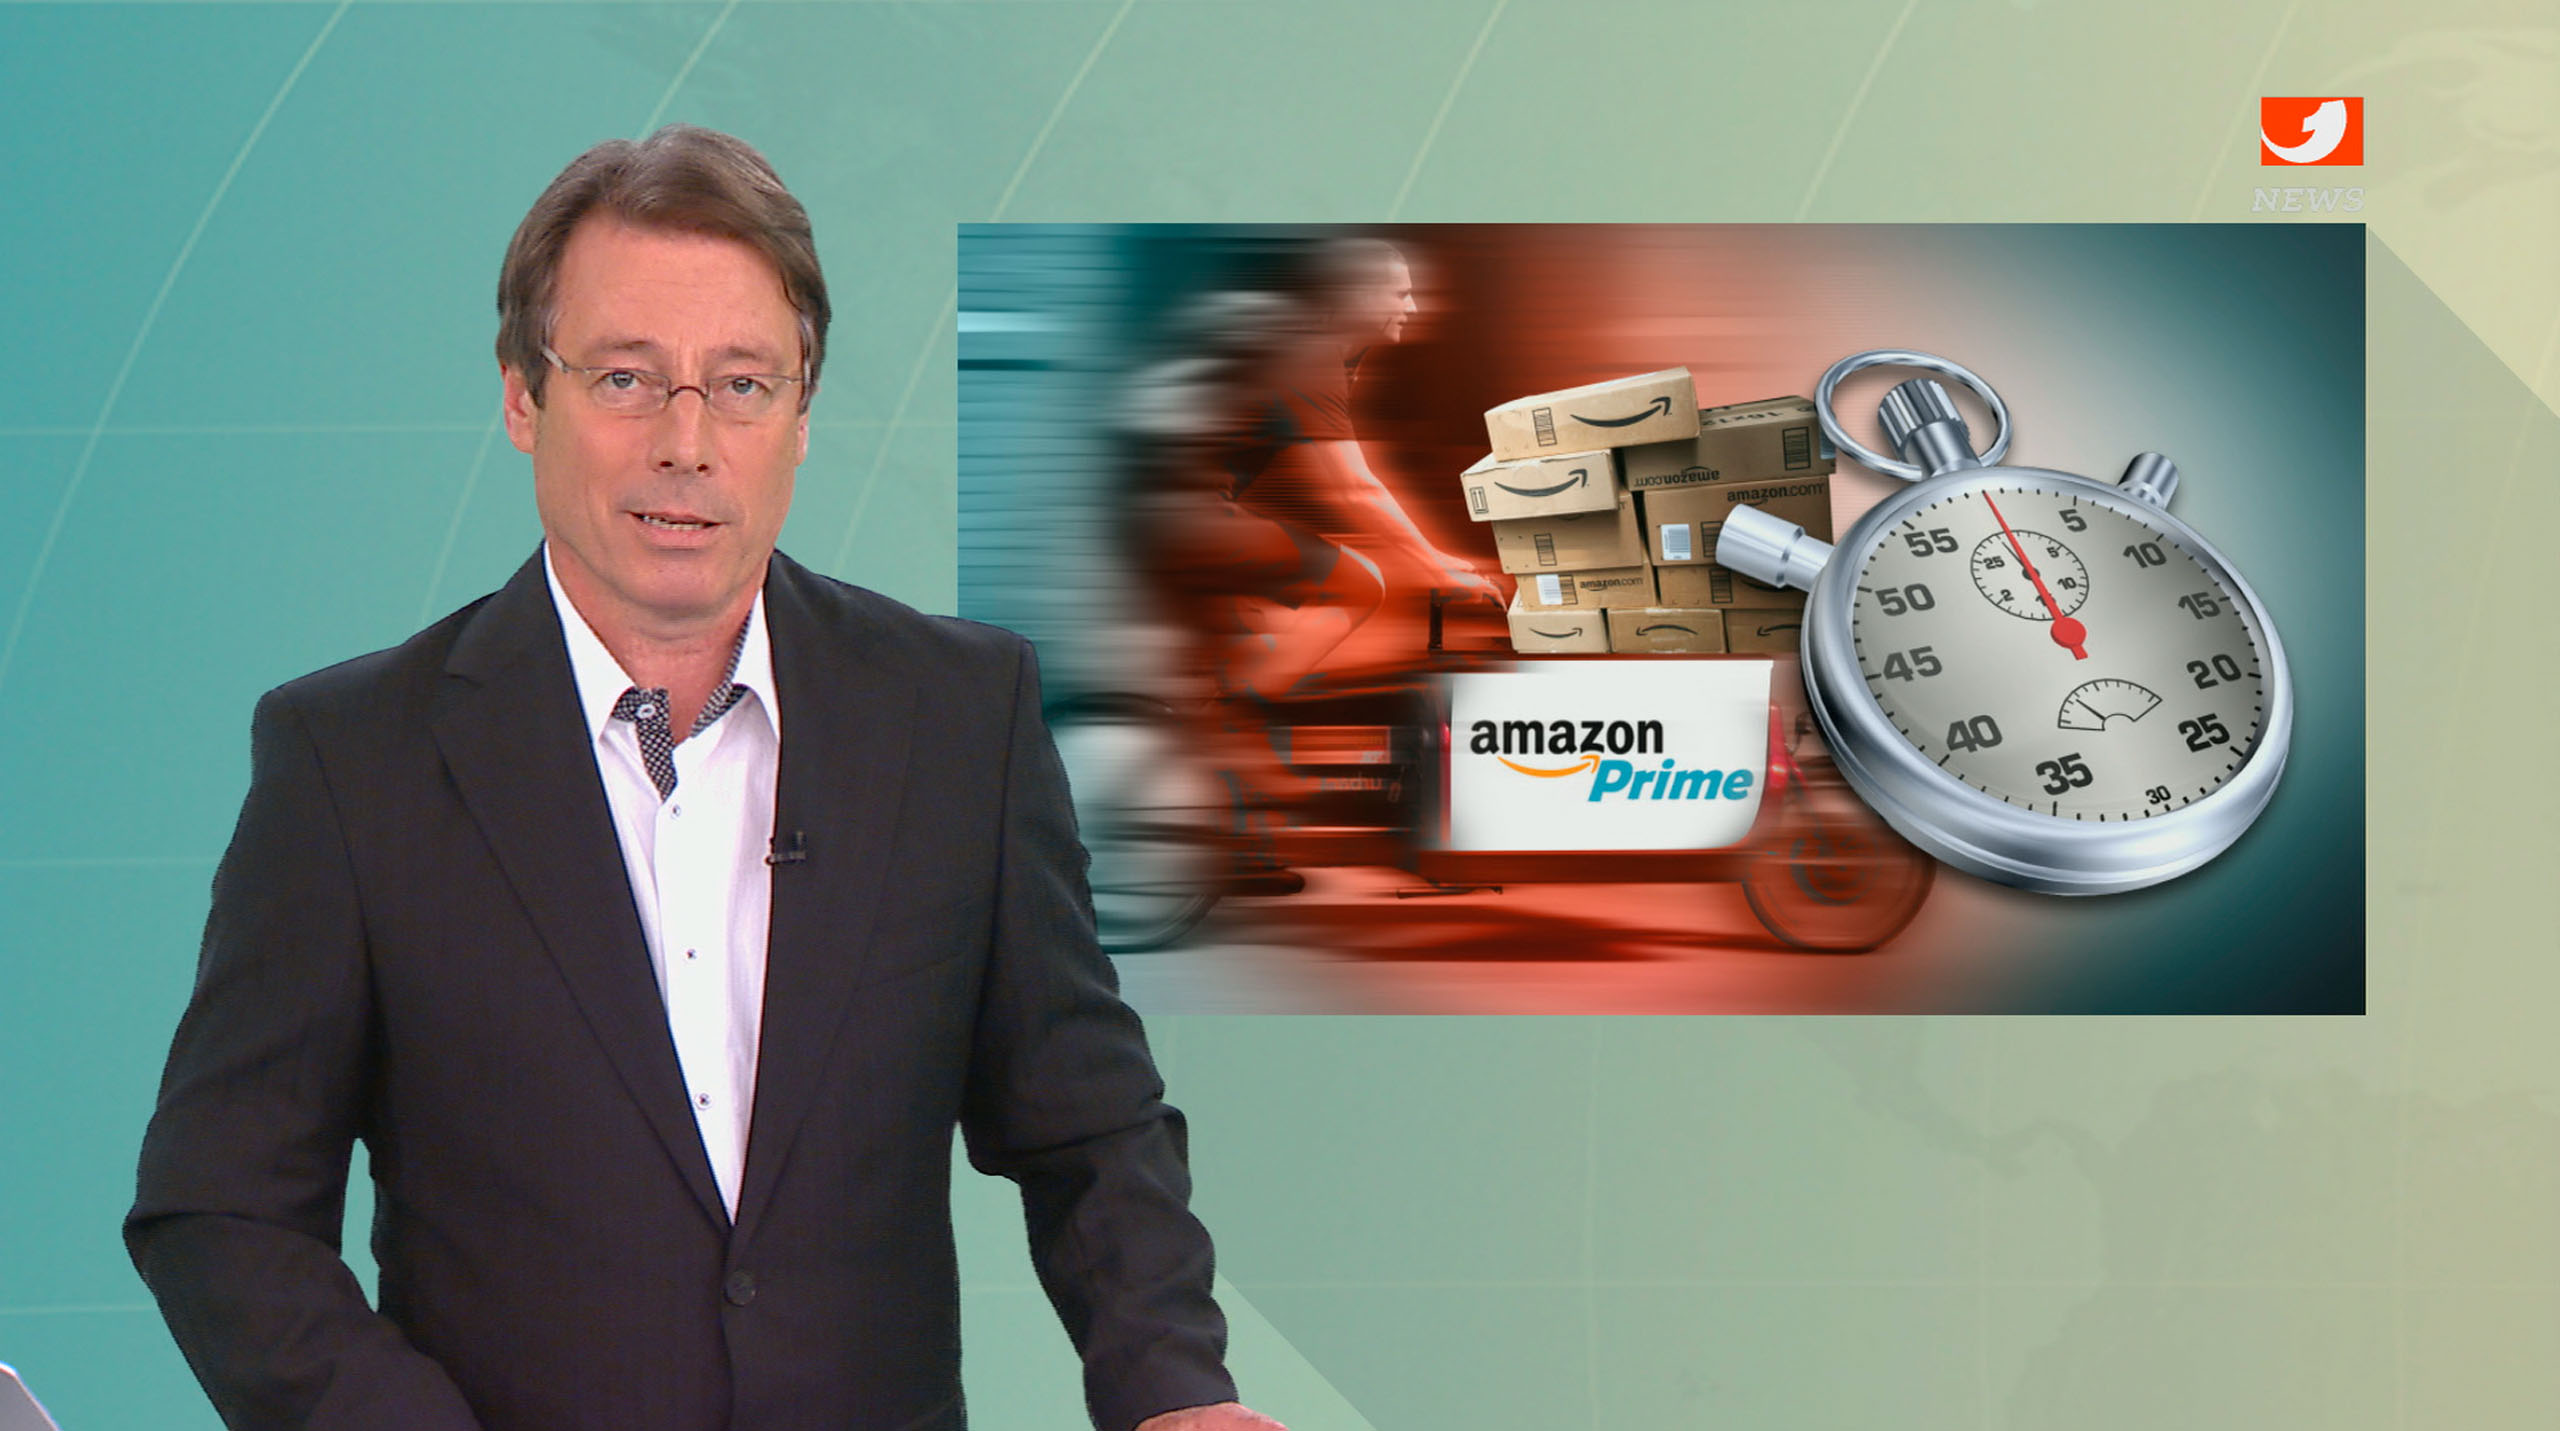 TV-News graphic designs (SAT.1, ProSieben, Kabel Eins, WeLT TV)